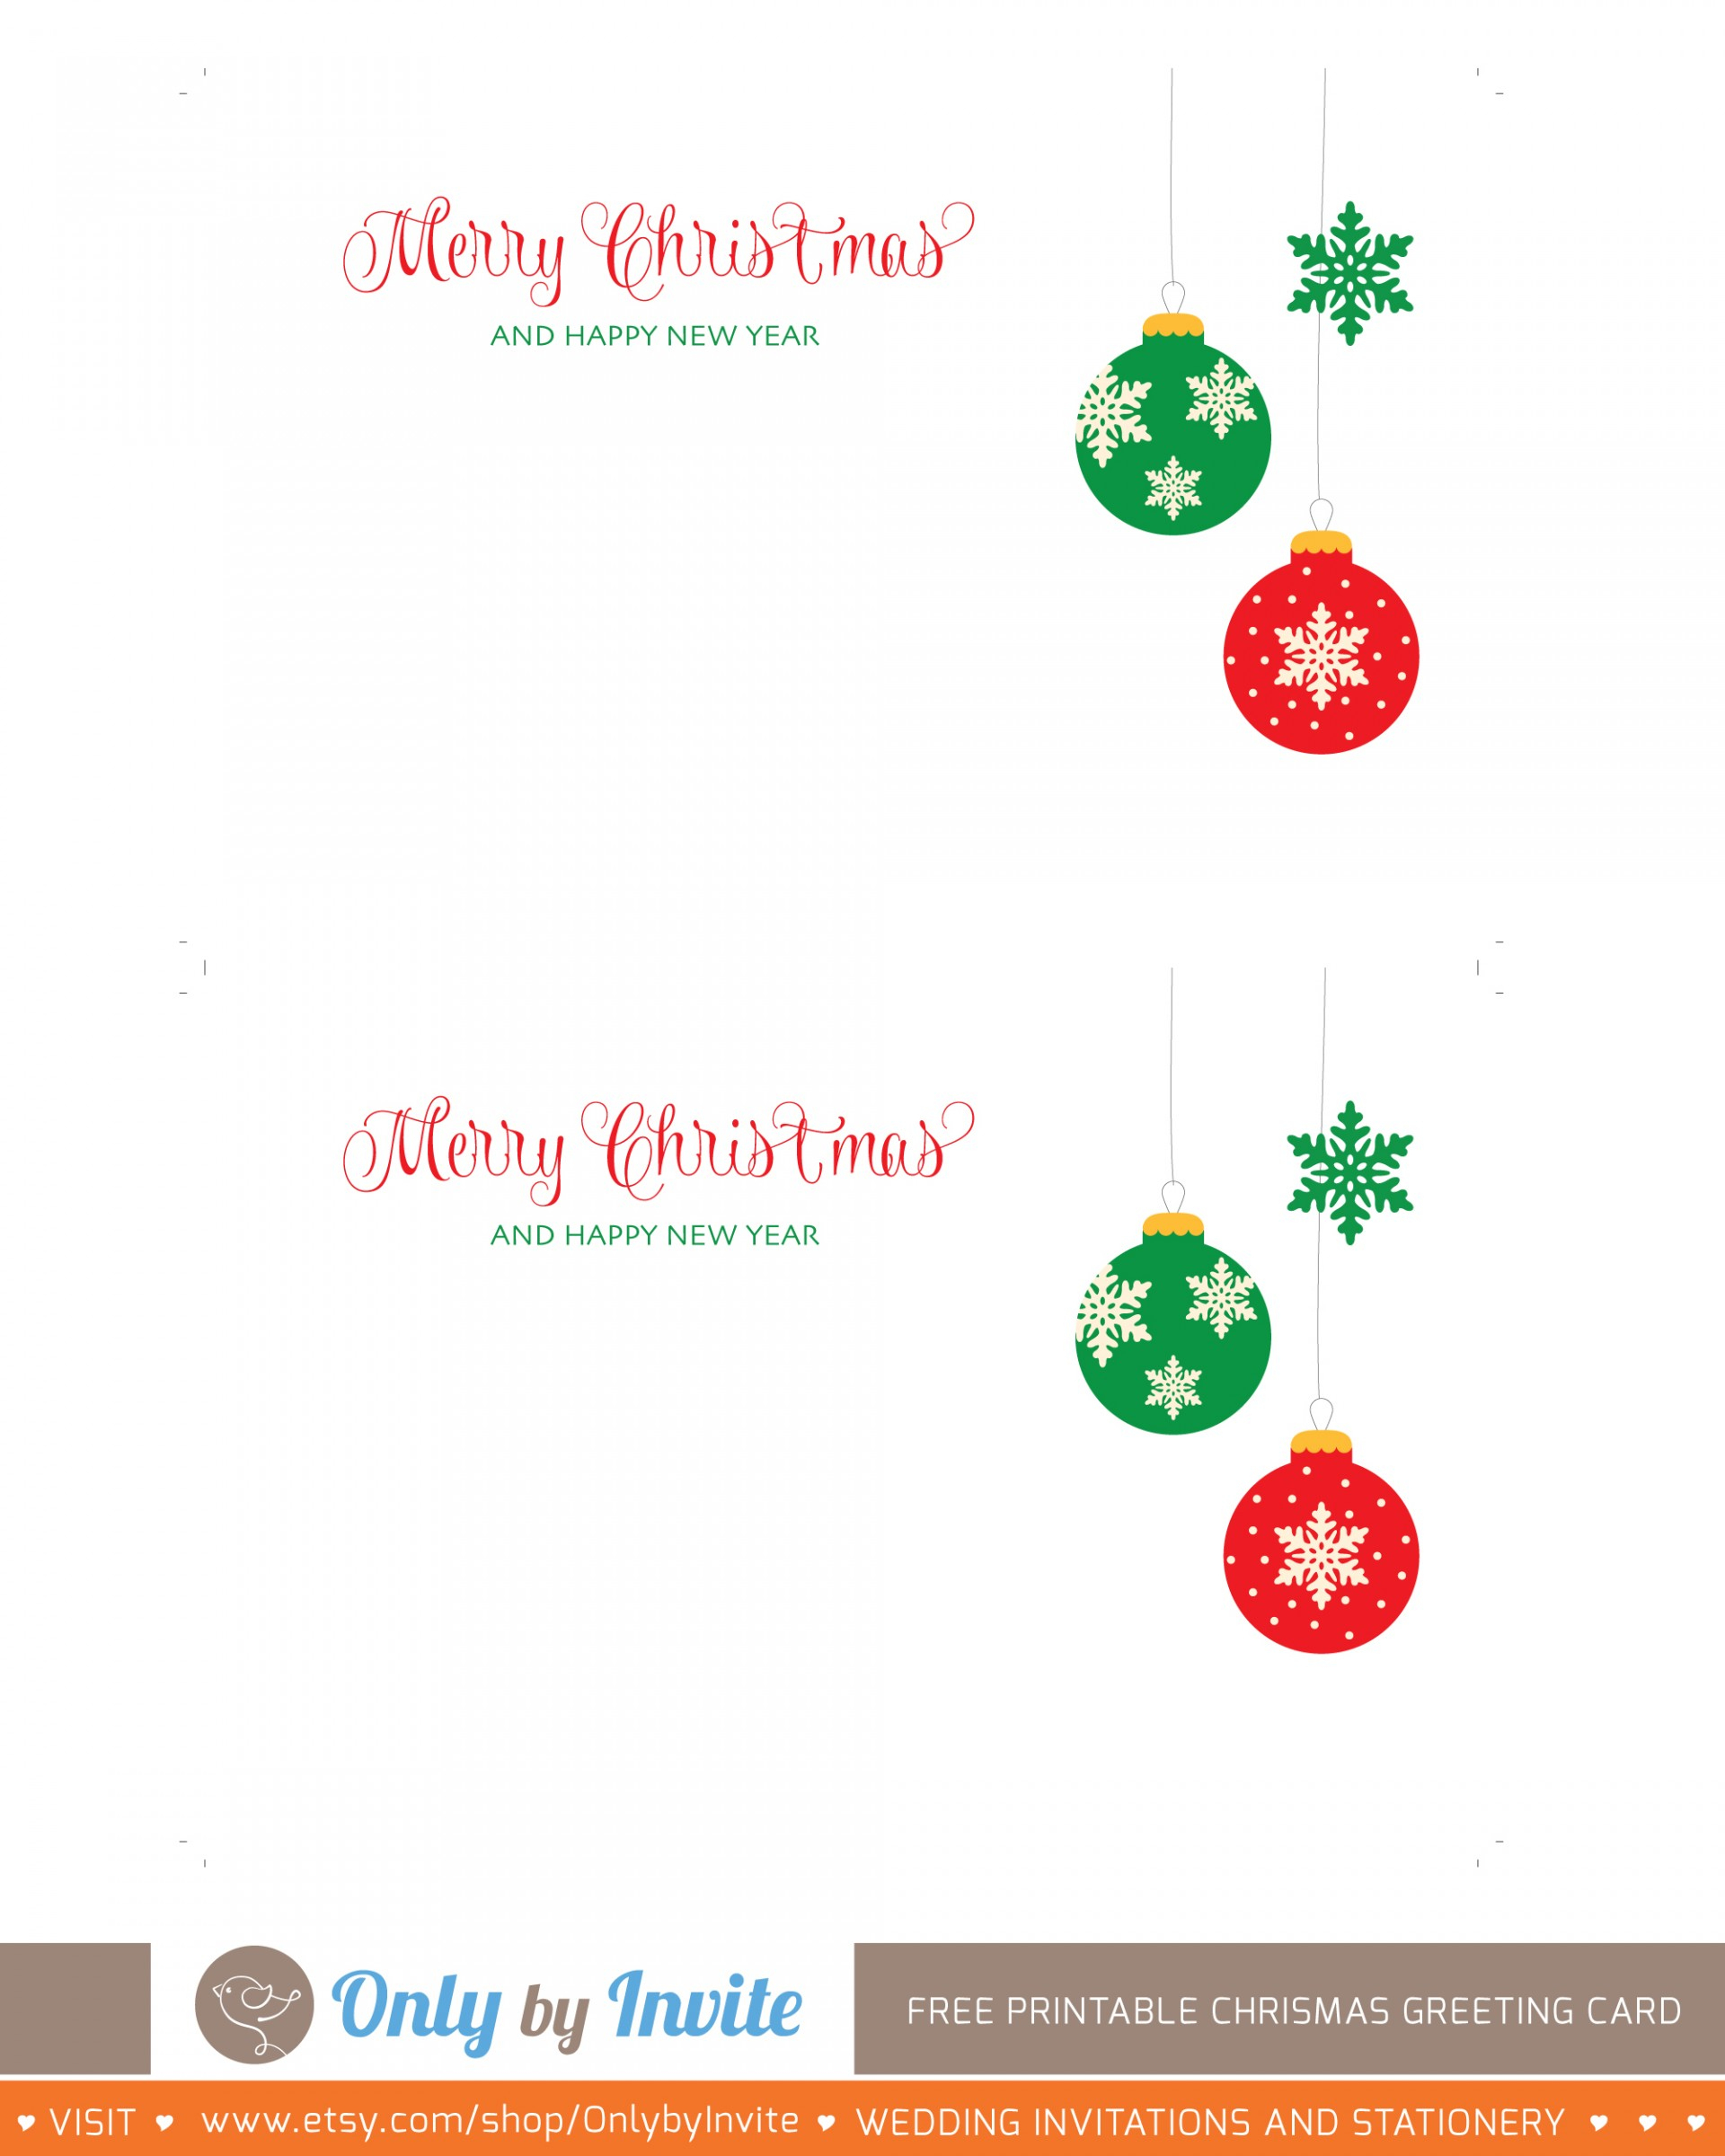 001 Printable Greetings Cards Templates Free Christmas Greeting Card - Free Printable Happy Holidays Greeting Cards